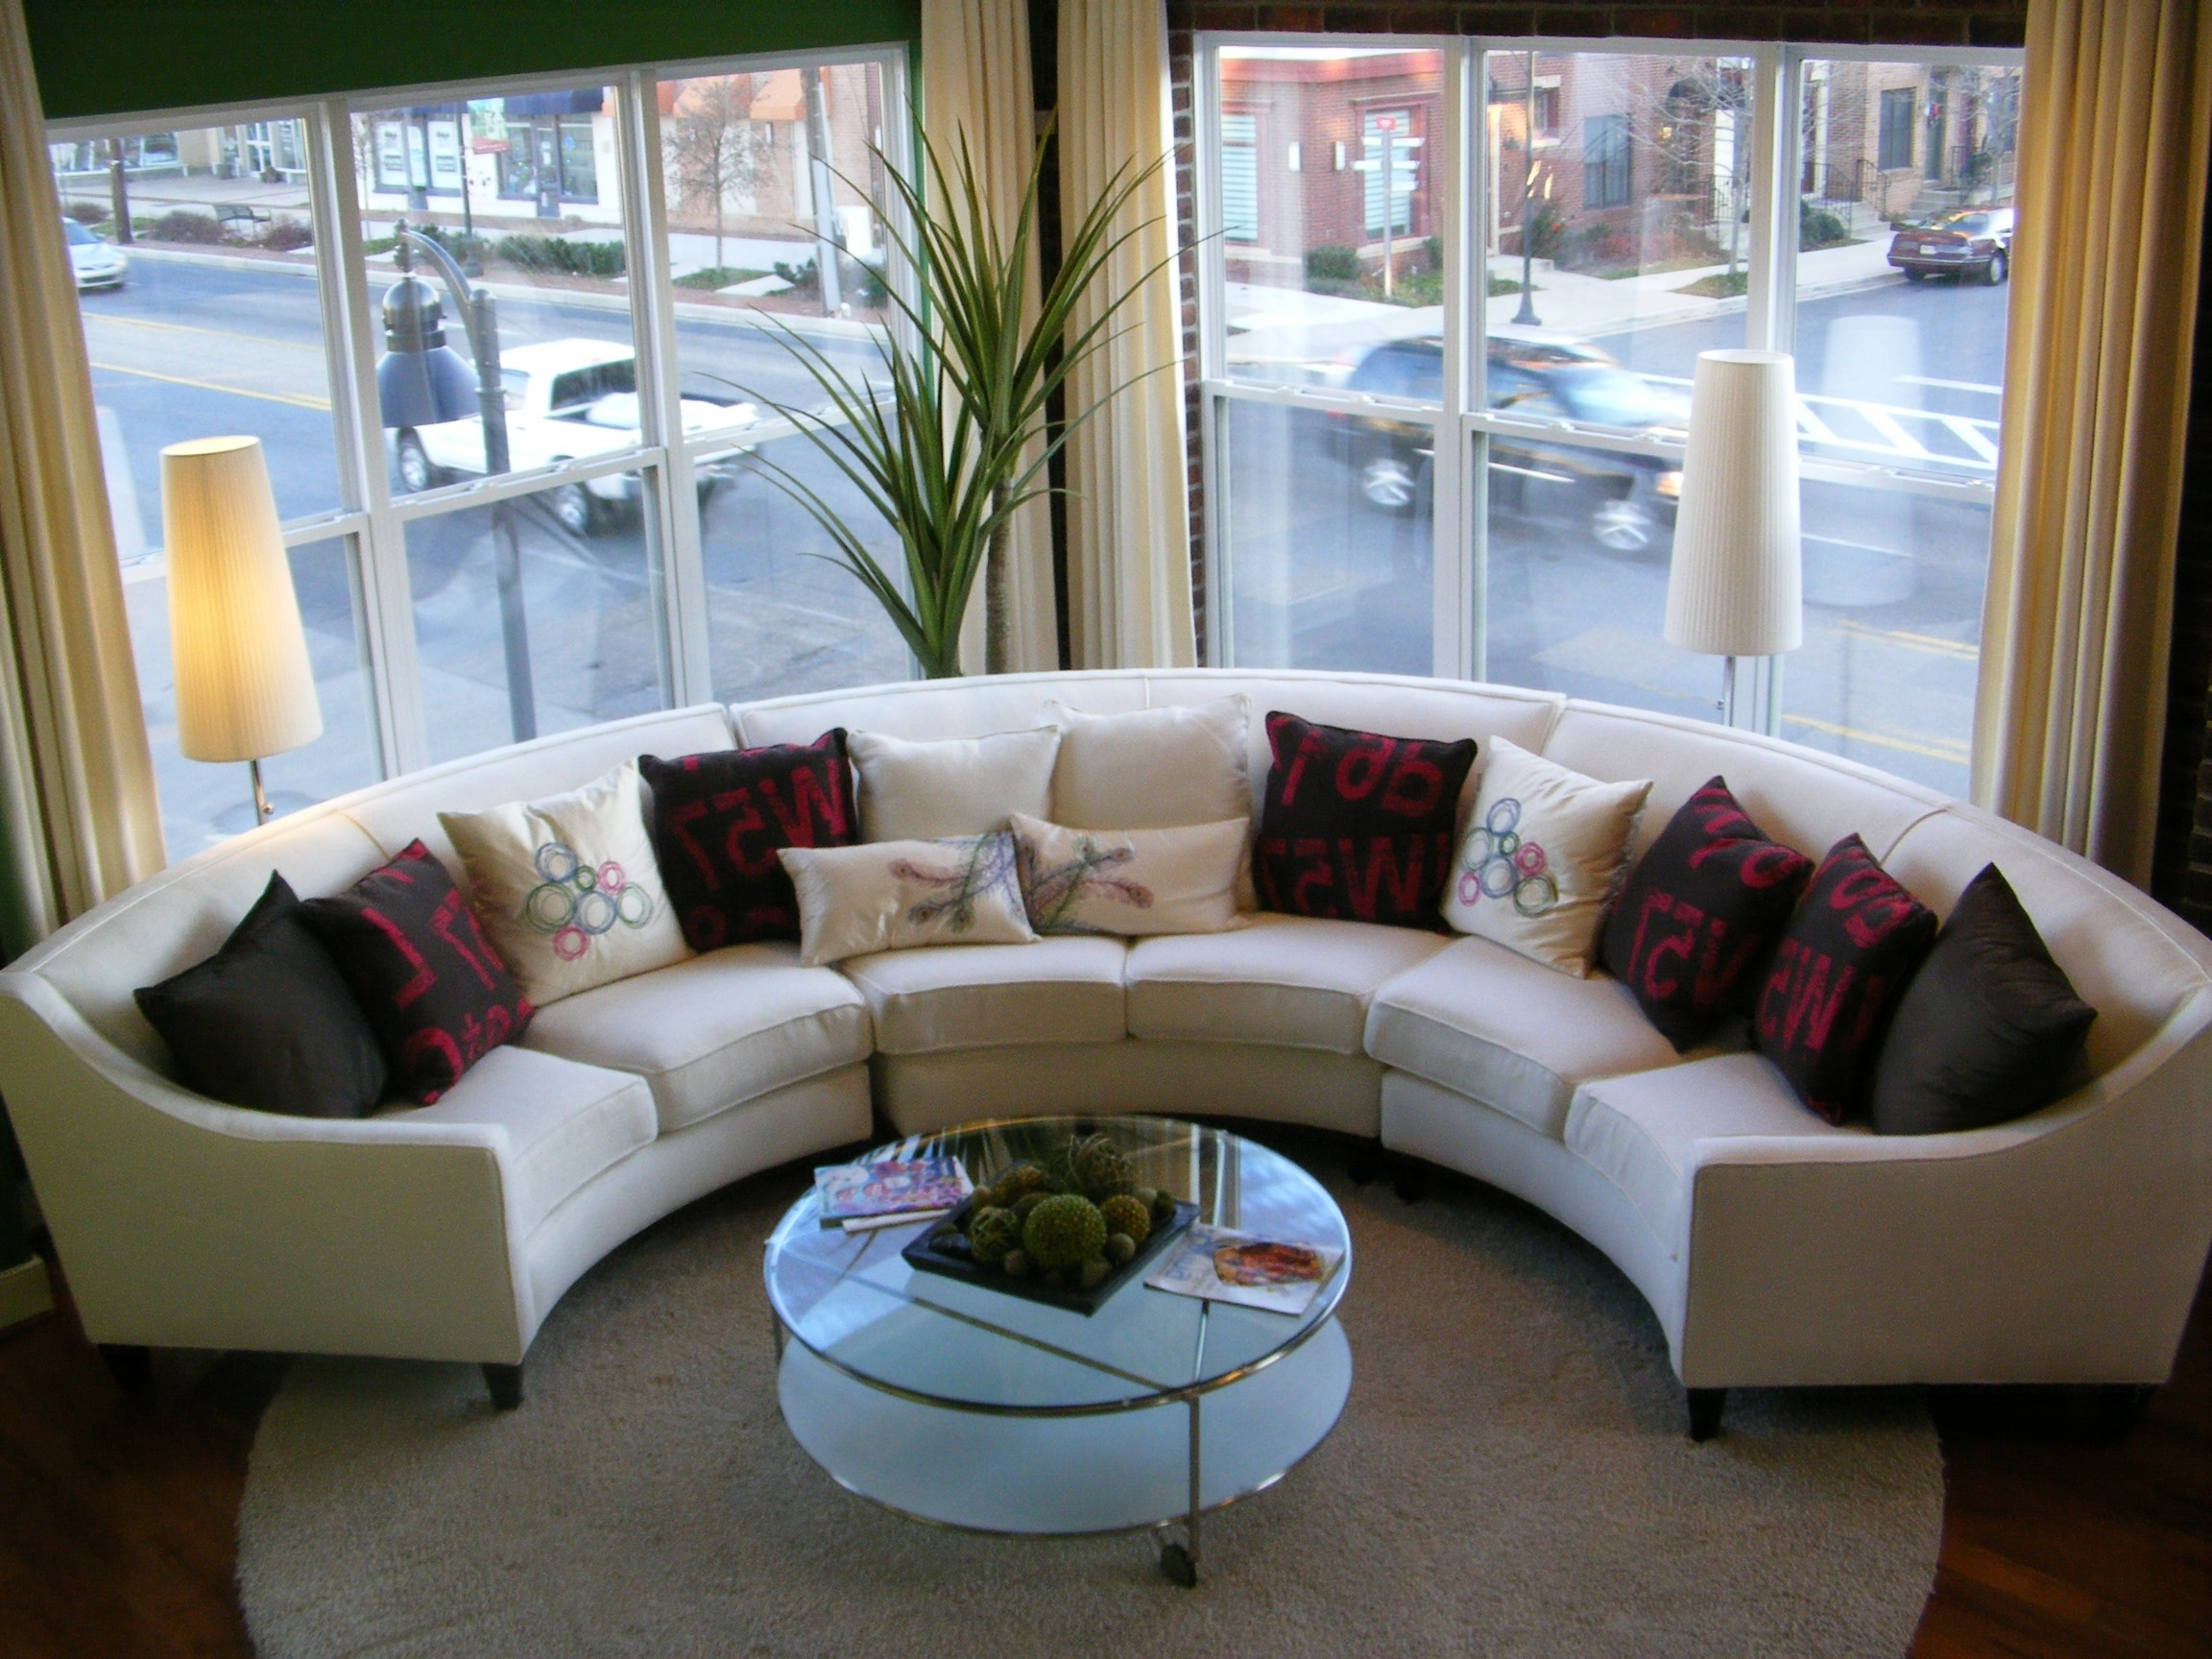 Sectional Sofas Decorating Regarding Current Small Living Room Decorating Ideas For Apartments With White (View 15 of 15)